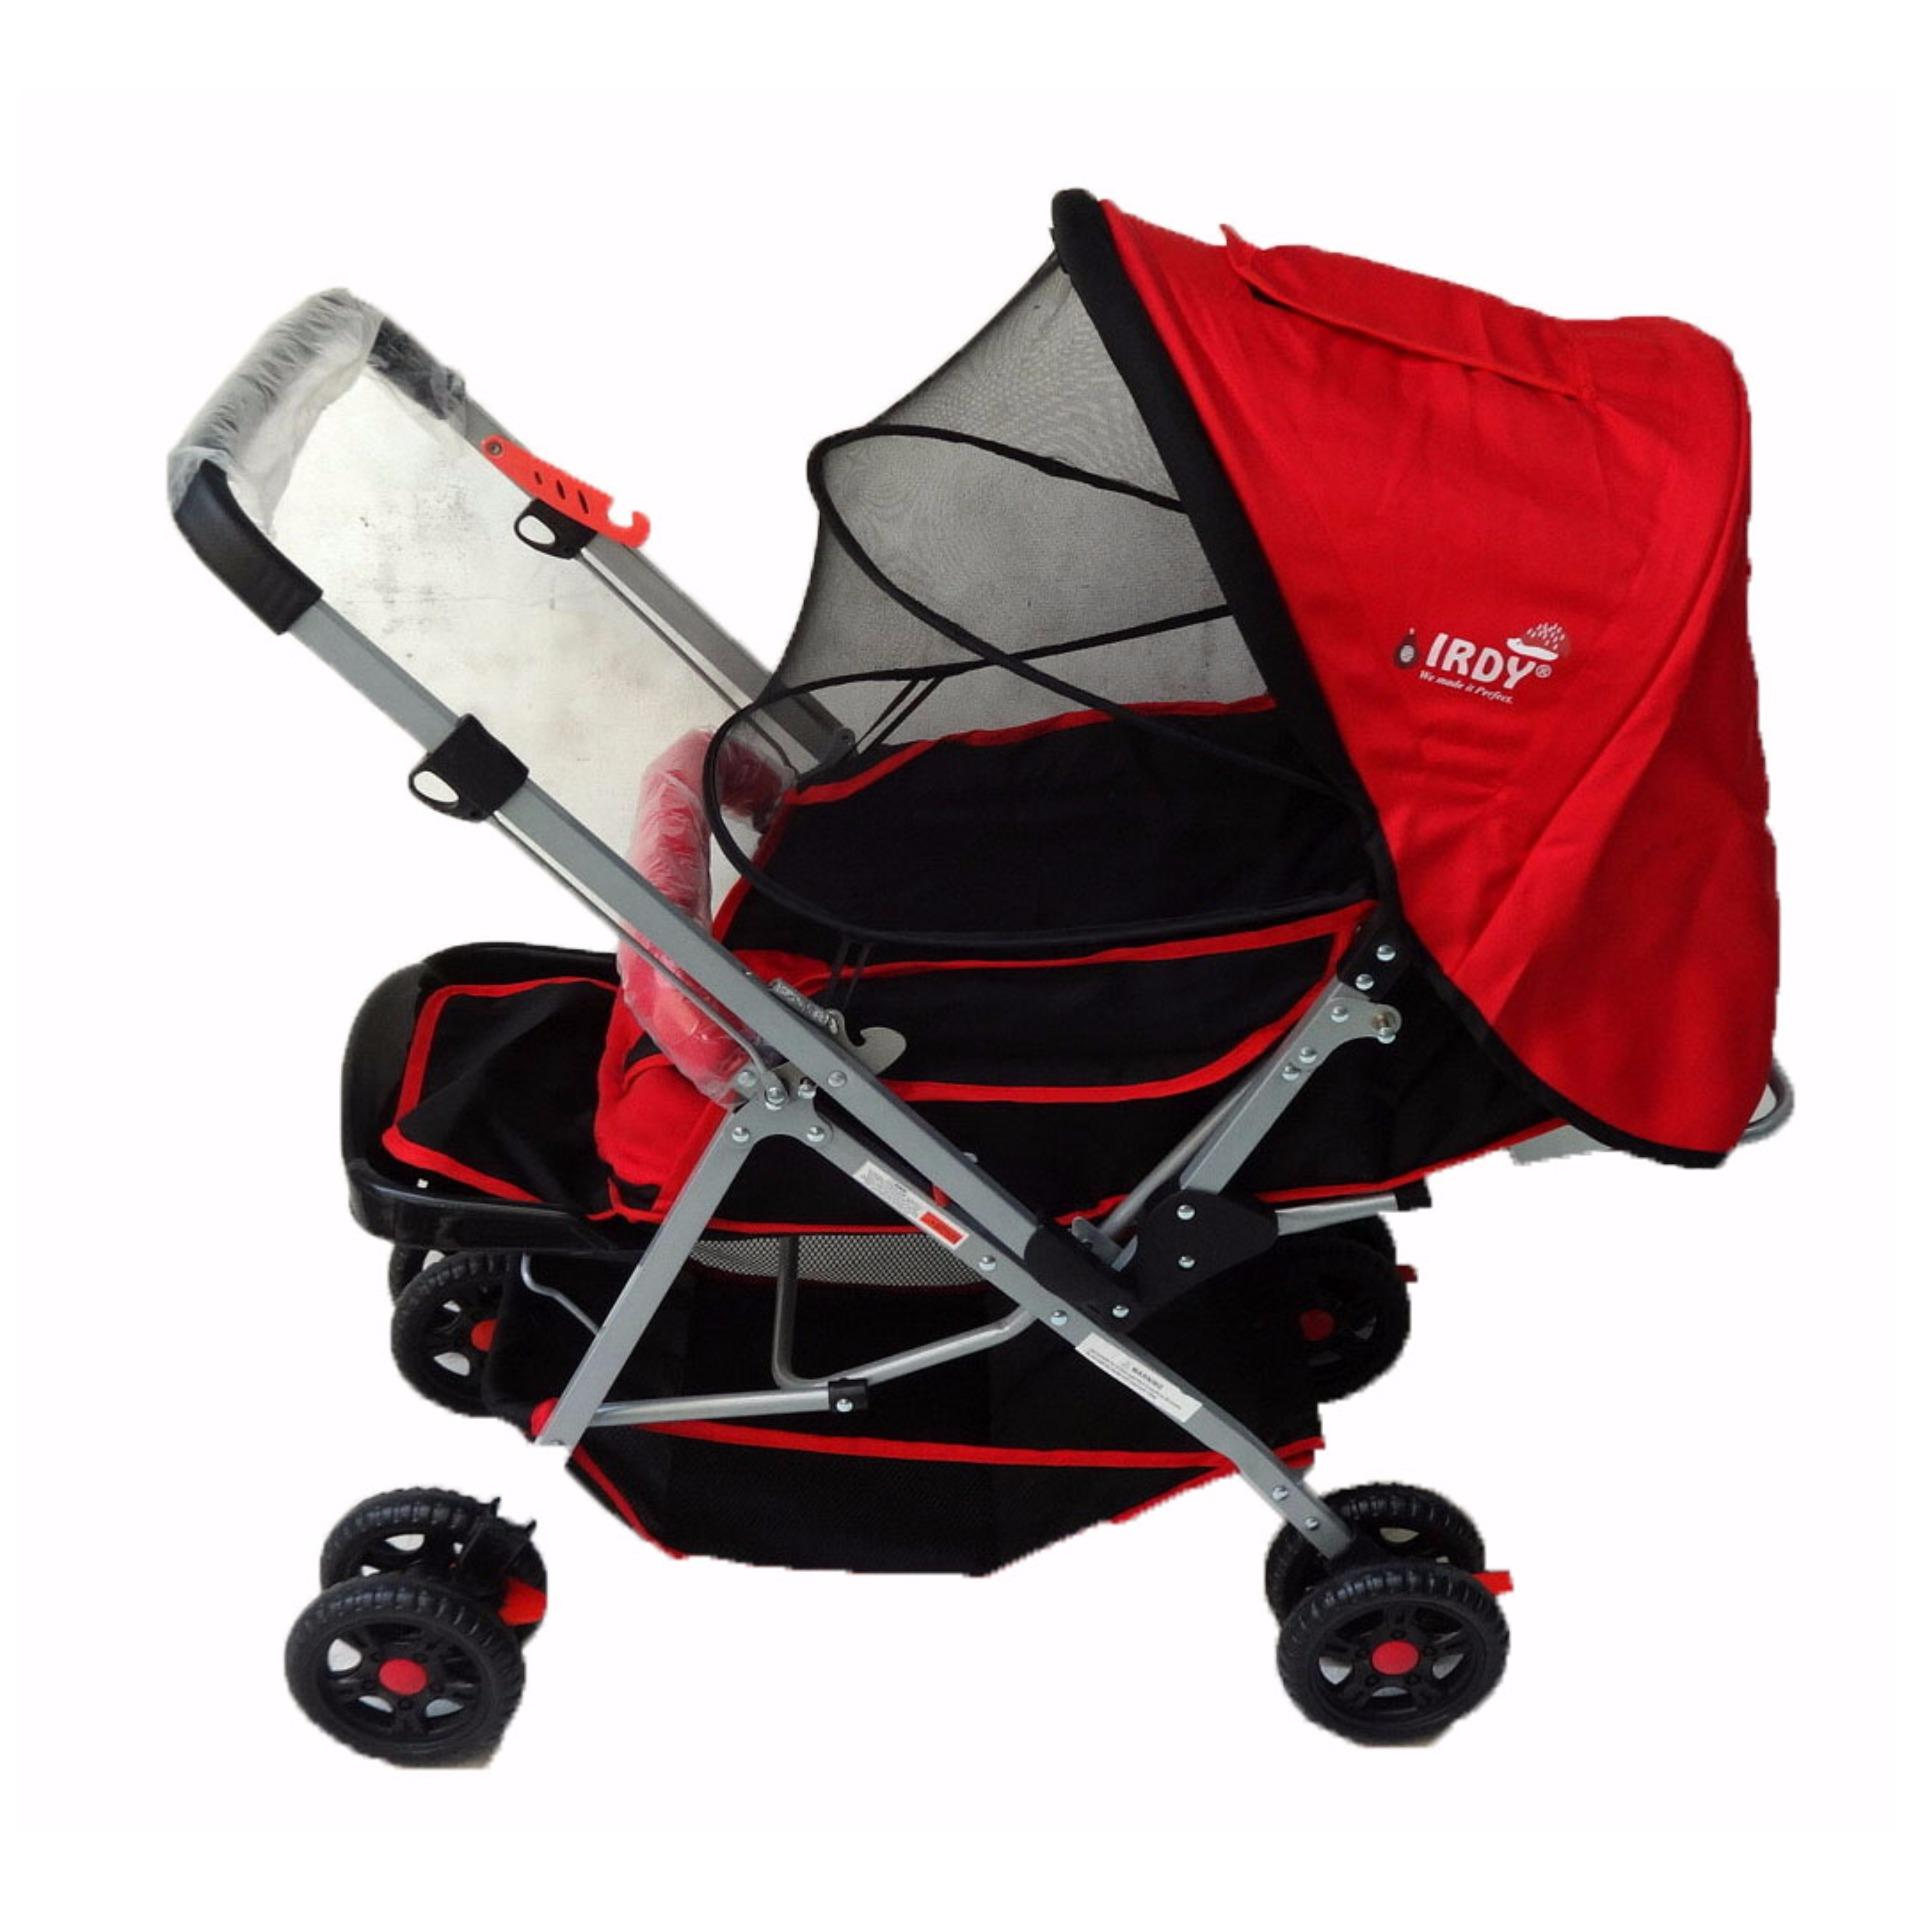 Crib for sale bacolod - Irdy S0829a Stroller With Mosquito Net Red